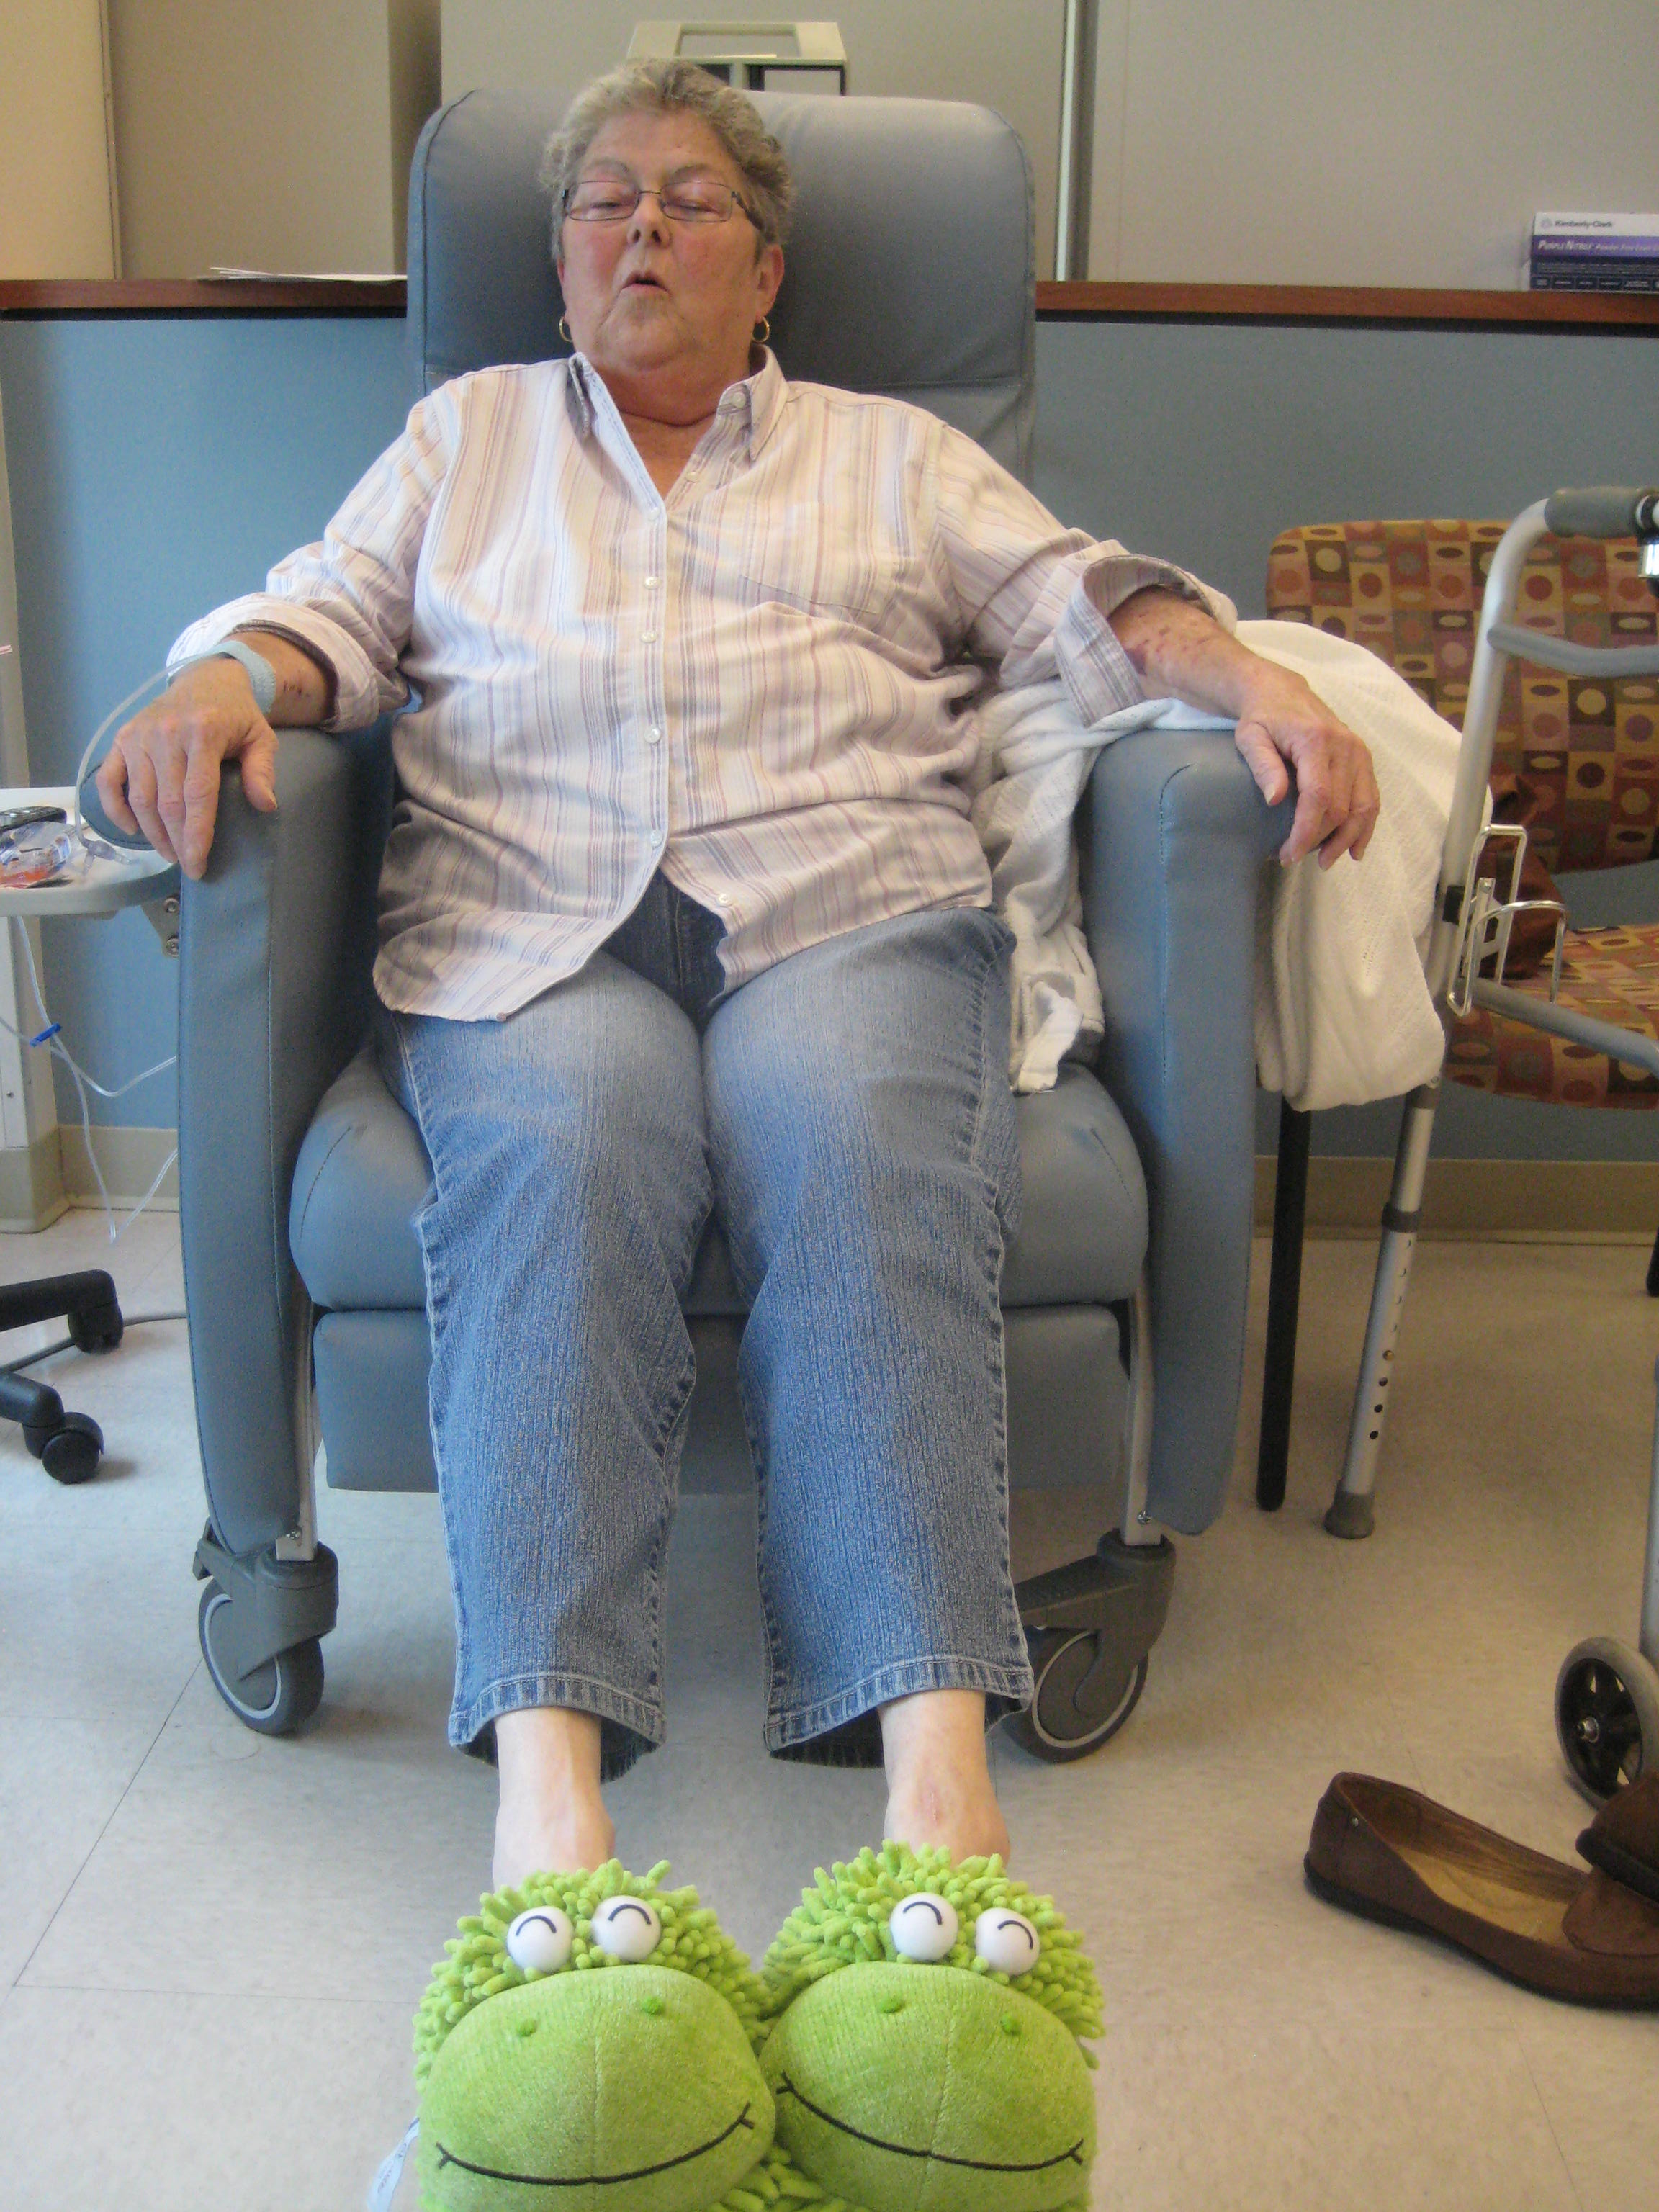 A happy patient takes a load off to warm her feet in a soft pair of fuzzy frog slippers.